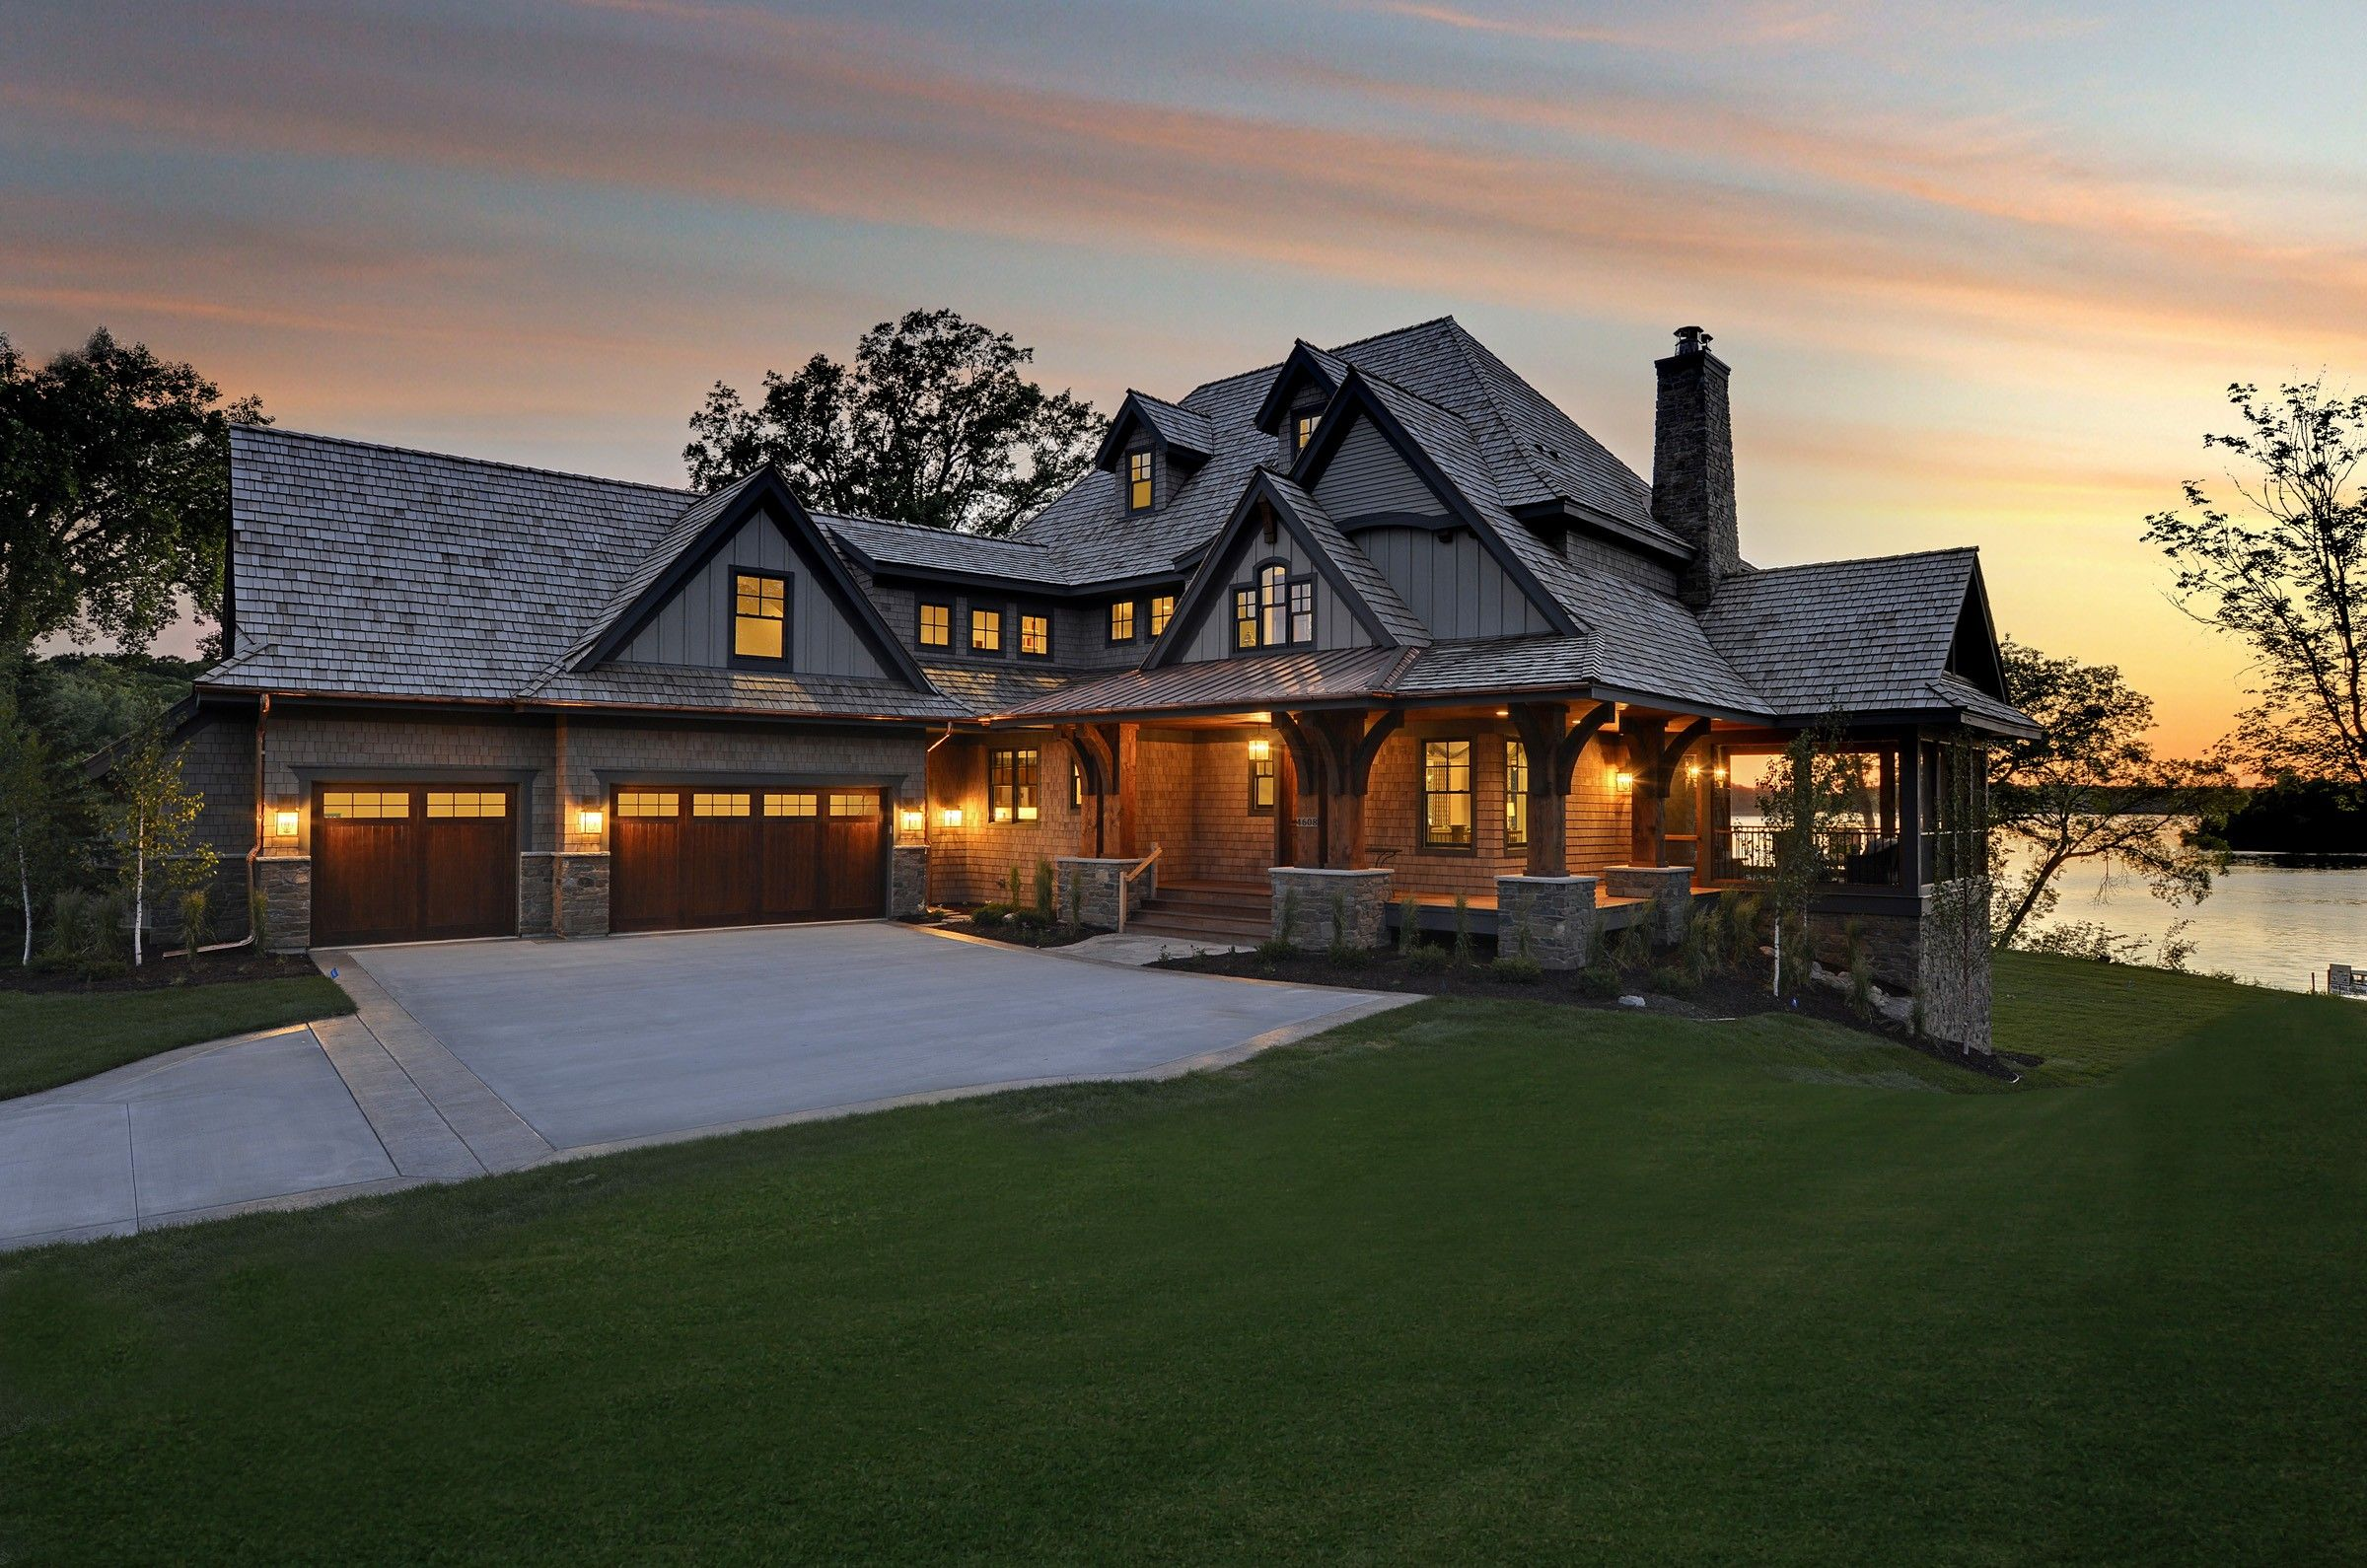 Exterior Image From A Stonewood Llc Custom Home Build Lake Houses Exterior House Designs Exterior House Exterior